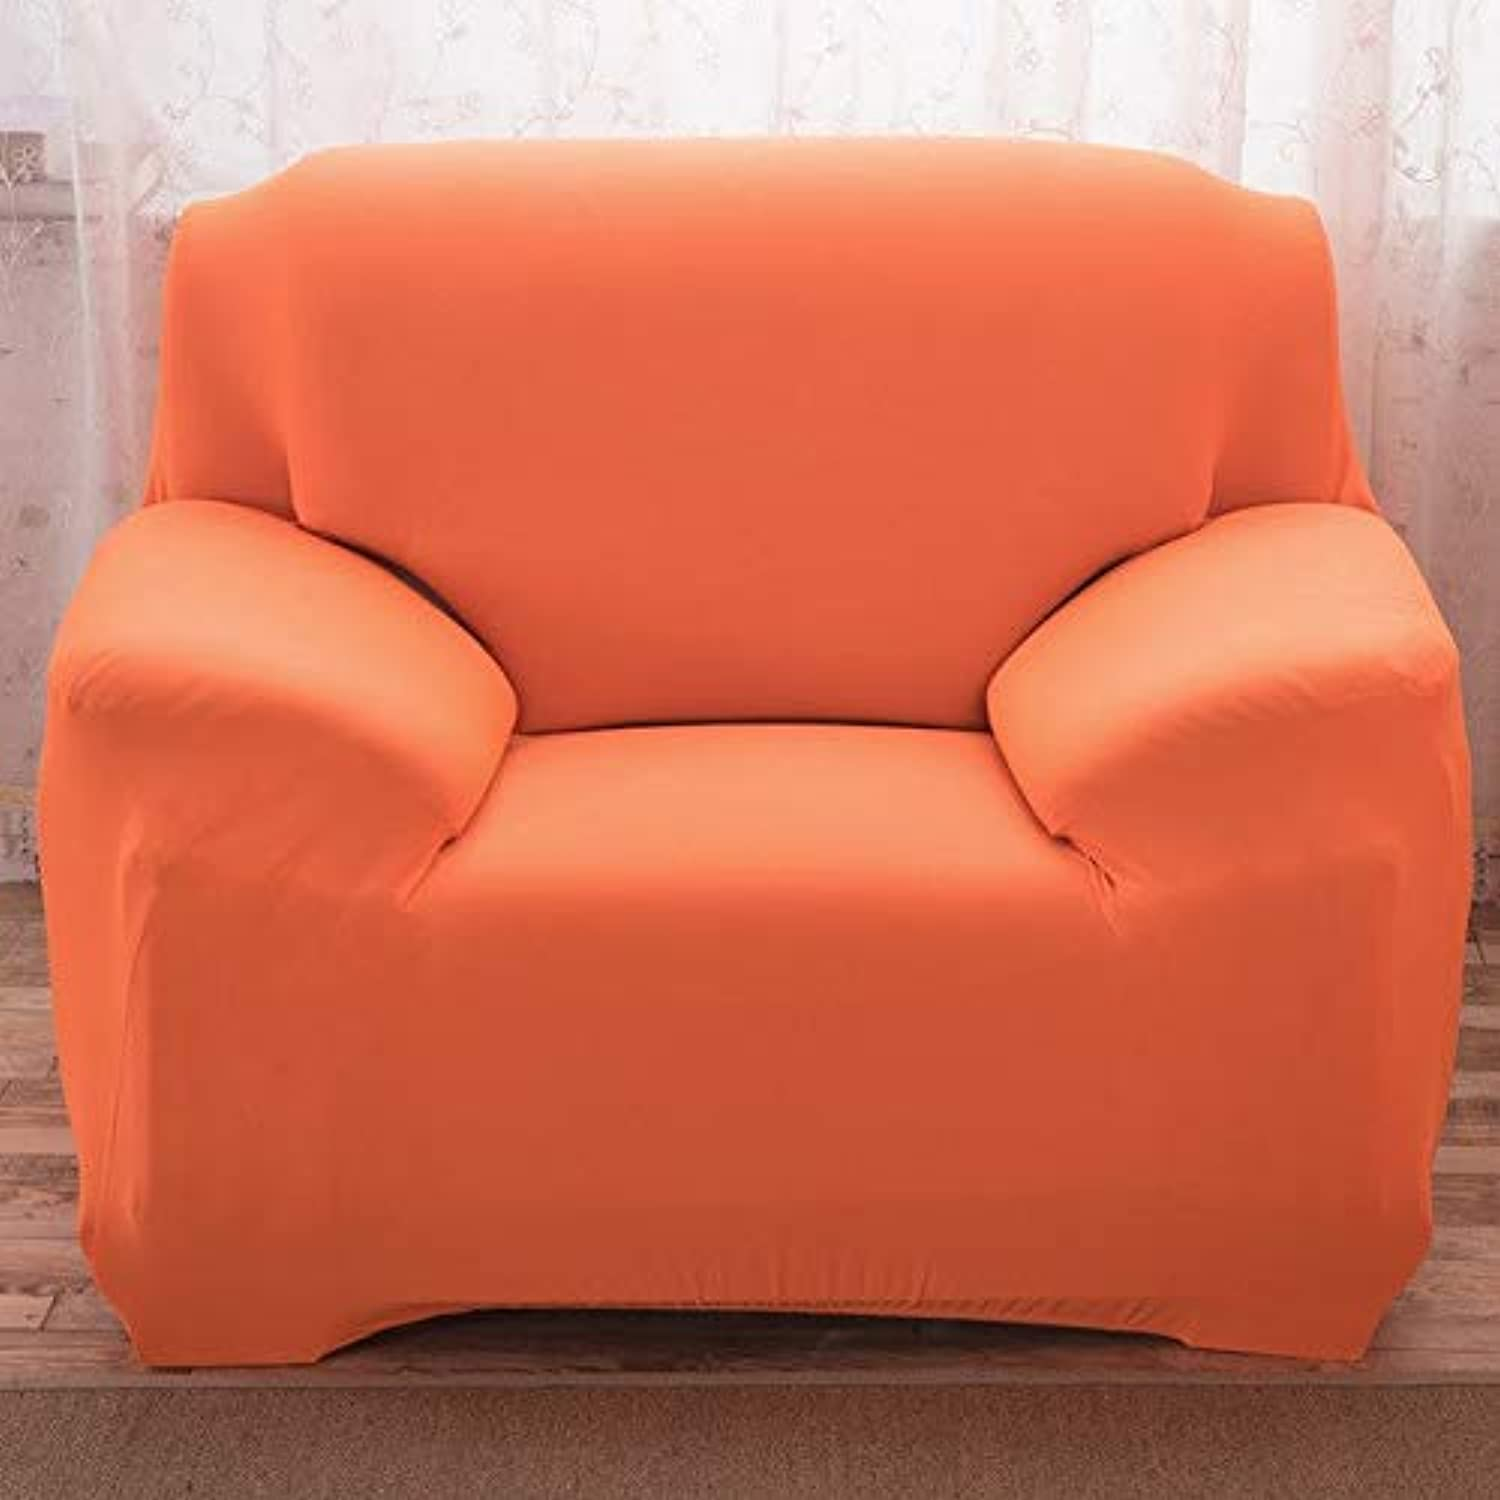 2017 Mulitcolor Sectional Flexible Stretch Sofa Cover Big Elasticity Couch Cover Single Double There Four -seat Sofa Cover   orange, Single seat Sofa